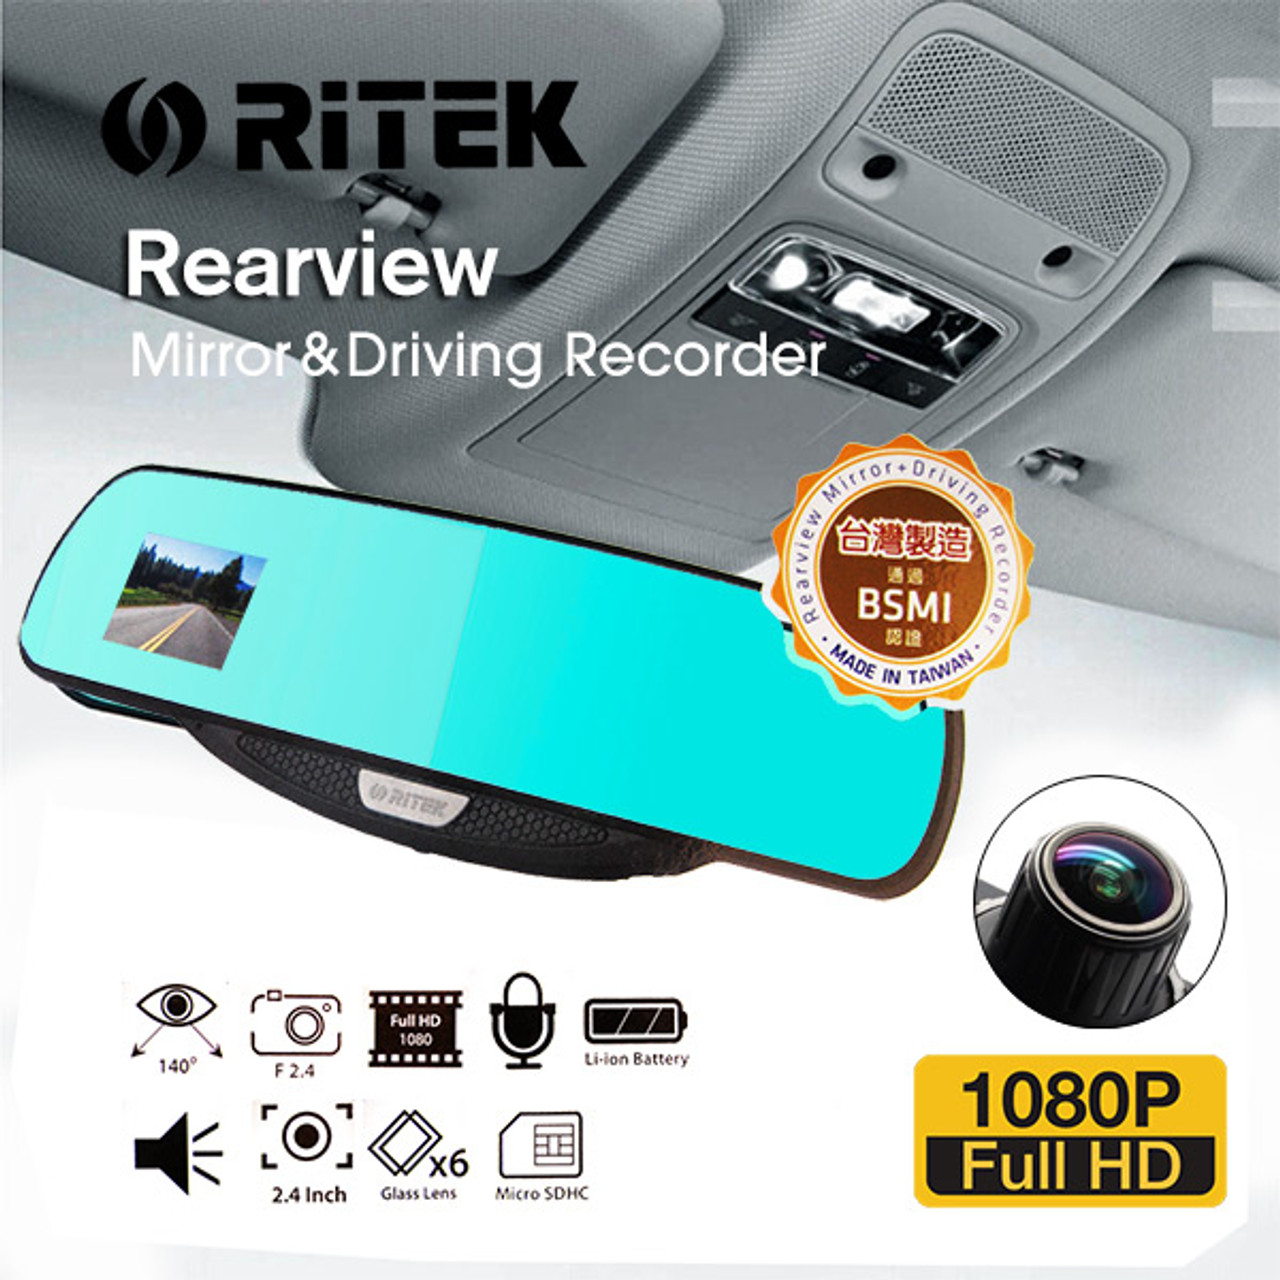 Product image for Ritek Full HD 1080 CRMT 01 Rearview Mirror + Driving Recorder | CX Computer Superstore